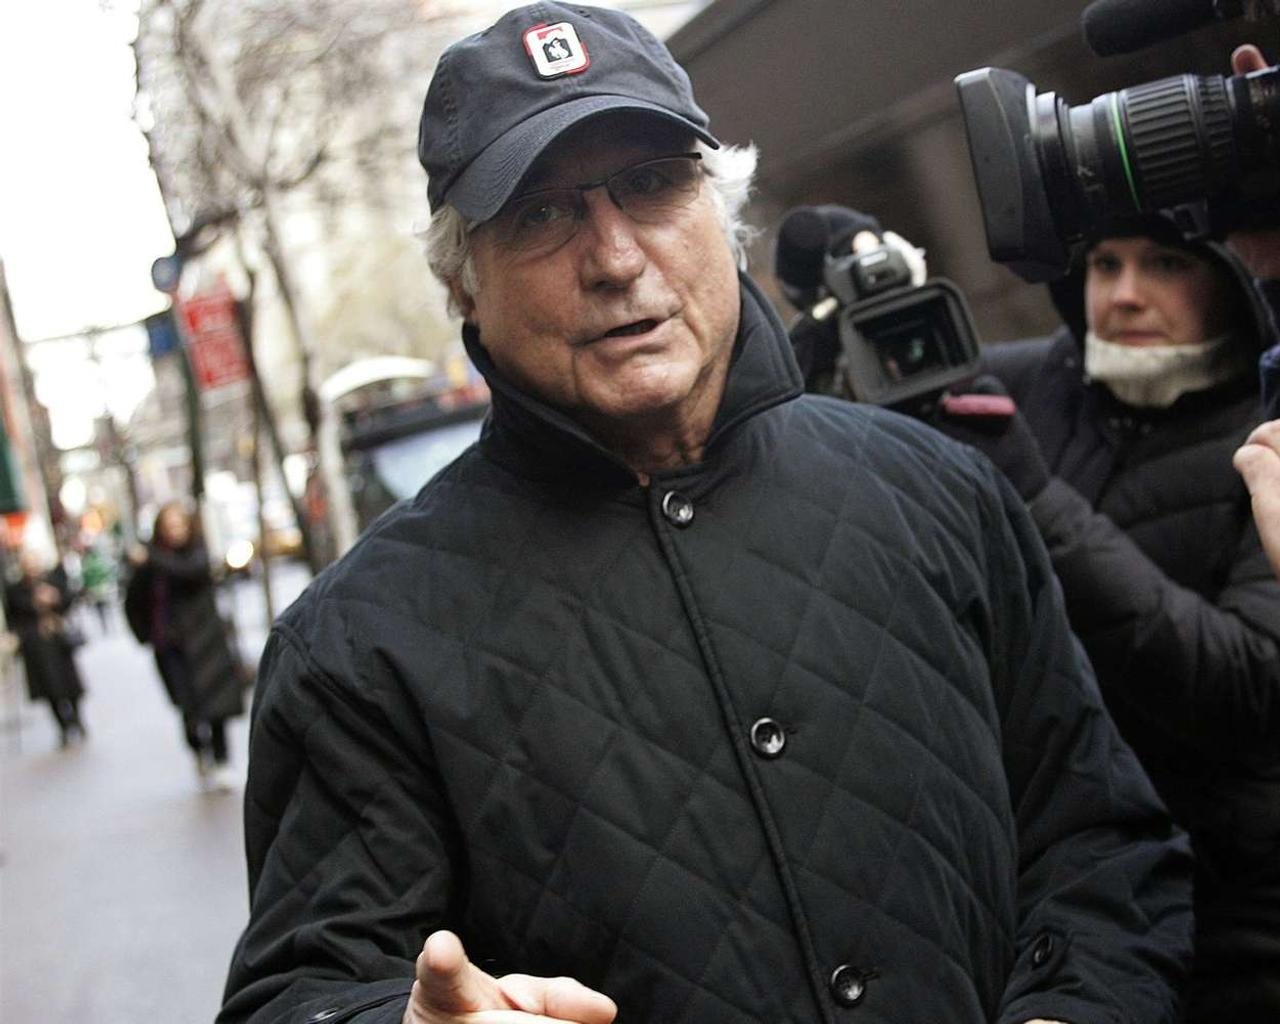 What happened to Bernie Madoff's family? Where Ruth Madoff and the others are now